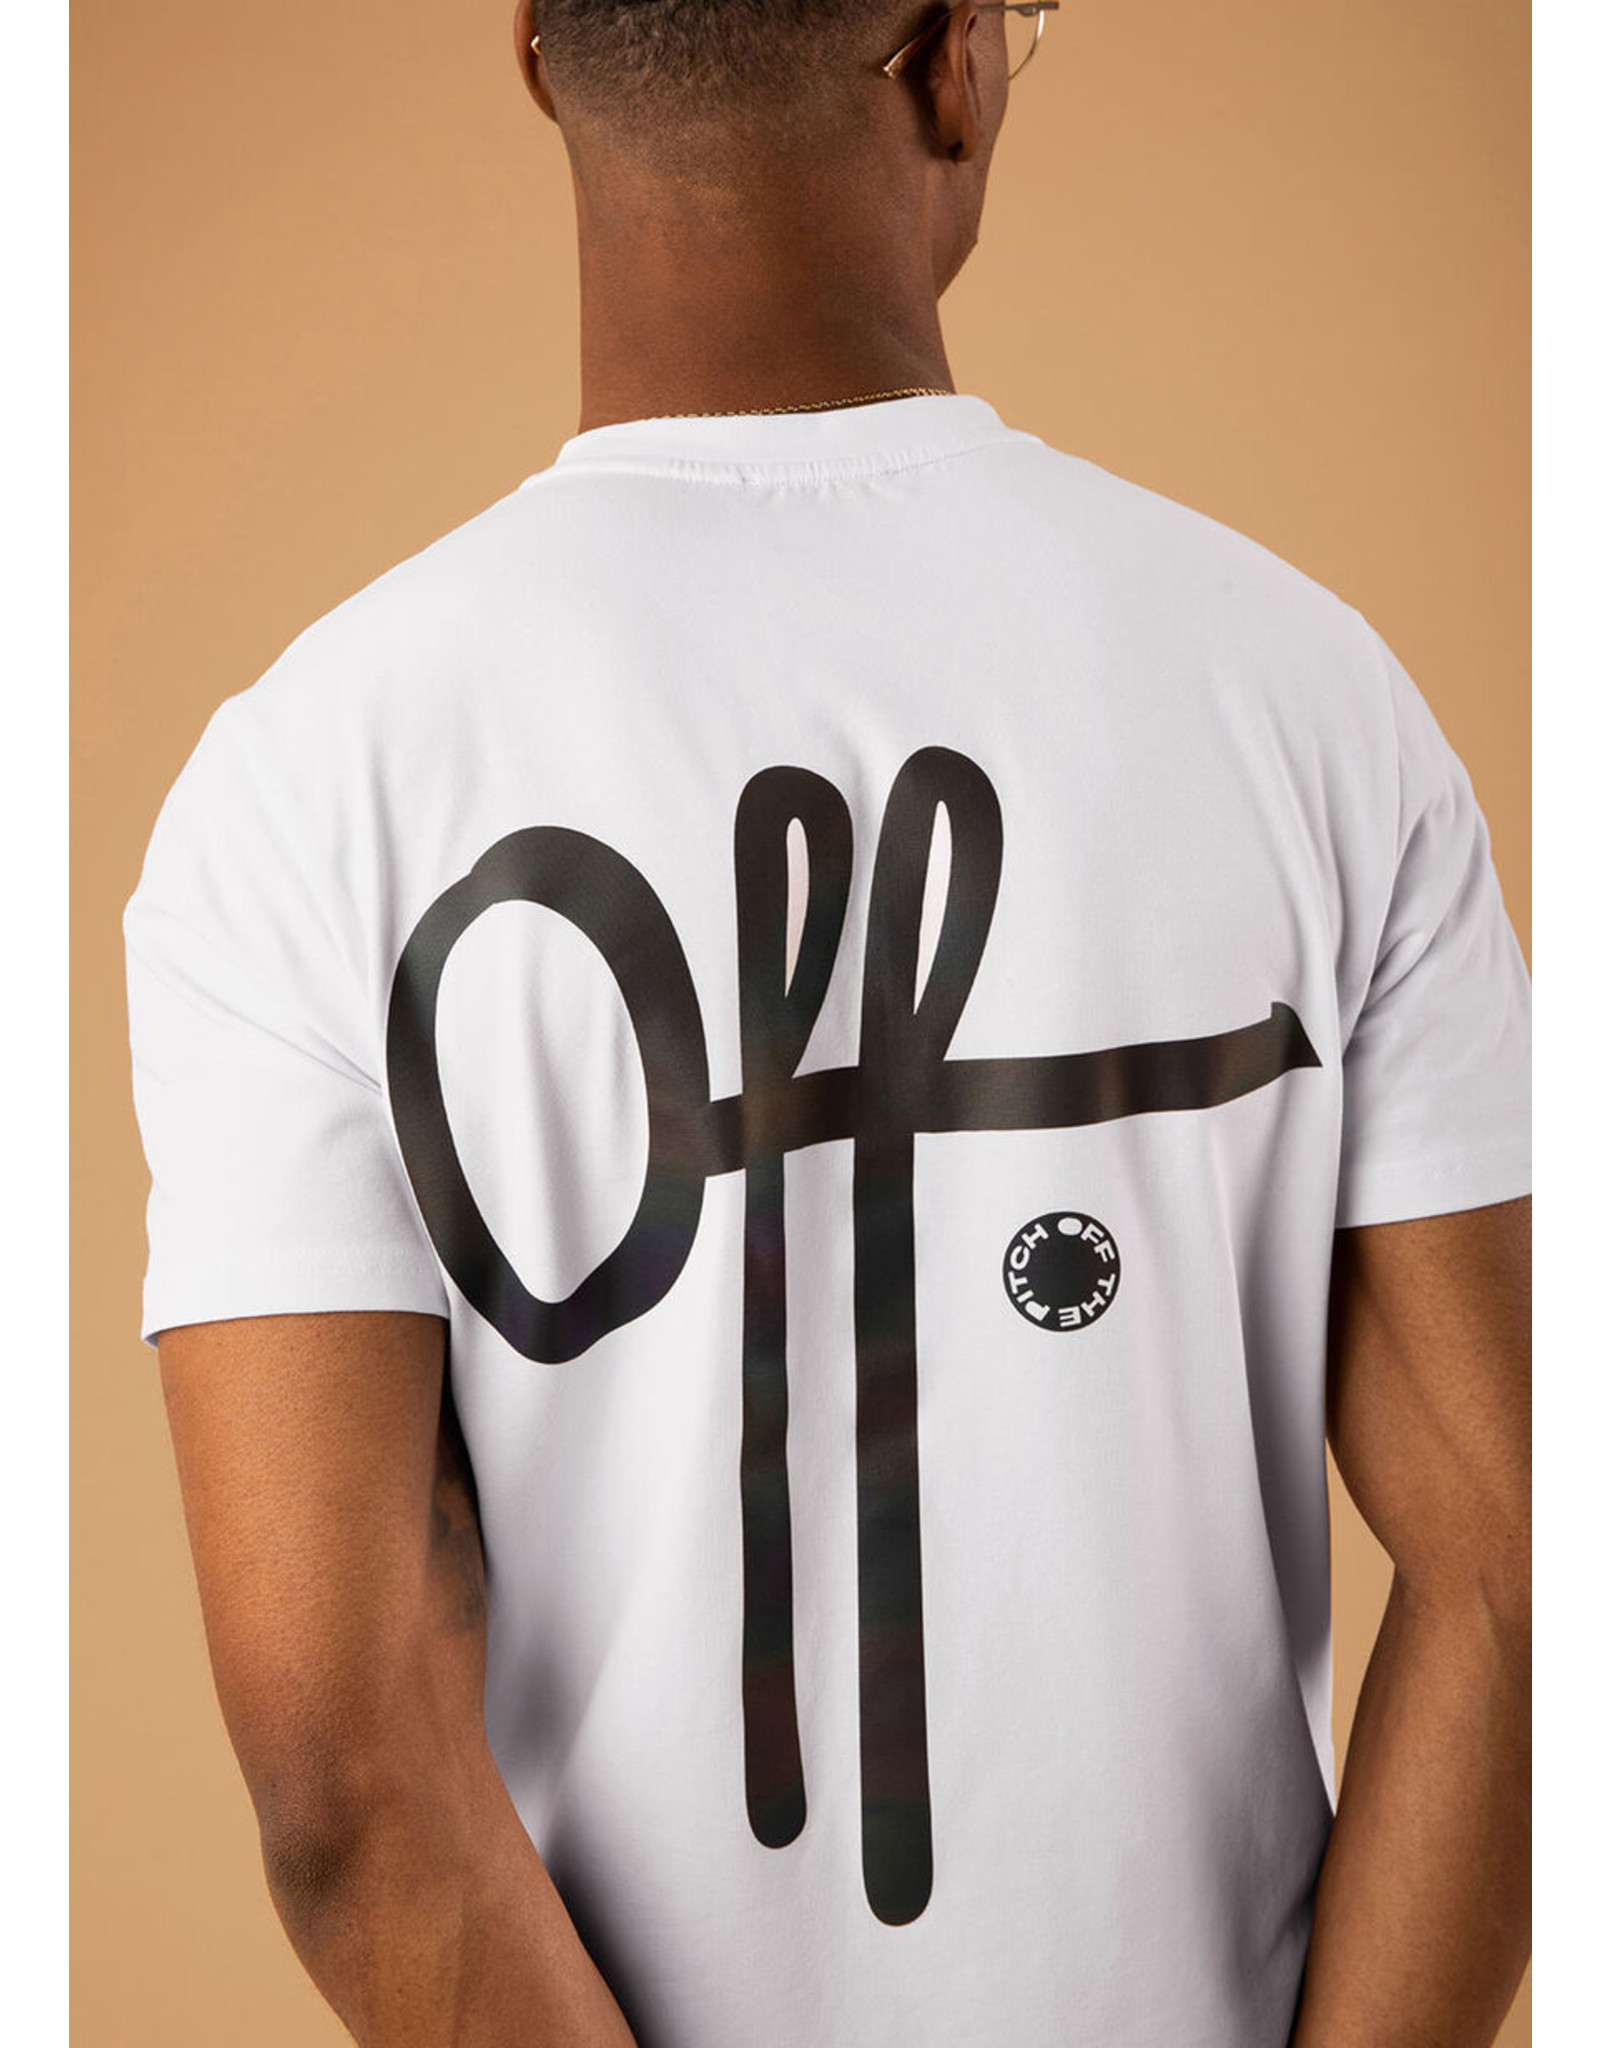 Off the pitch The Illuminated 2.0 Tee